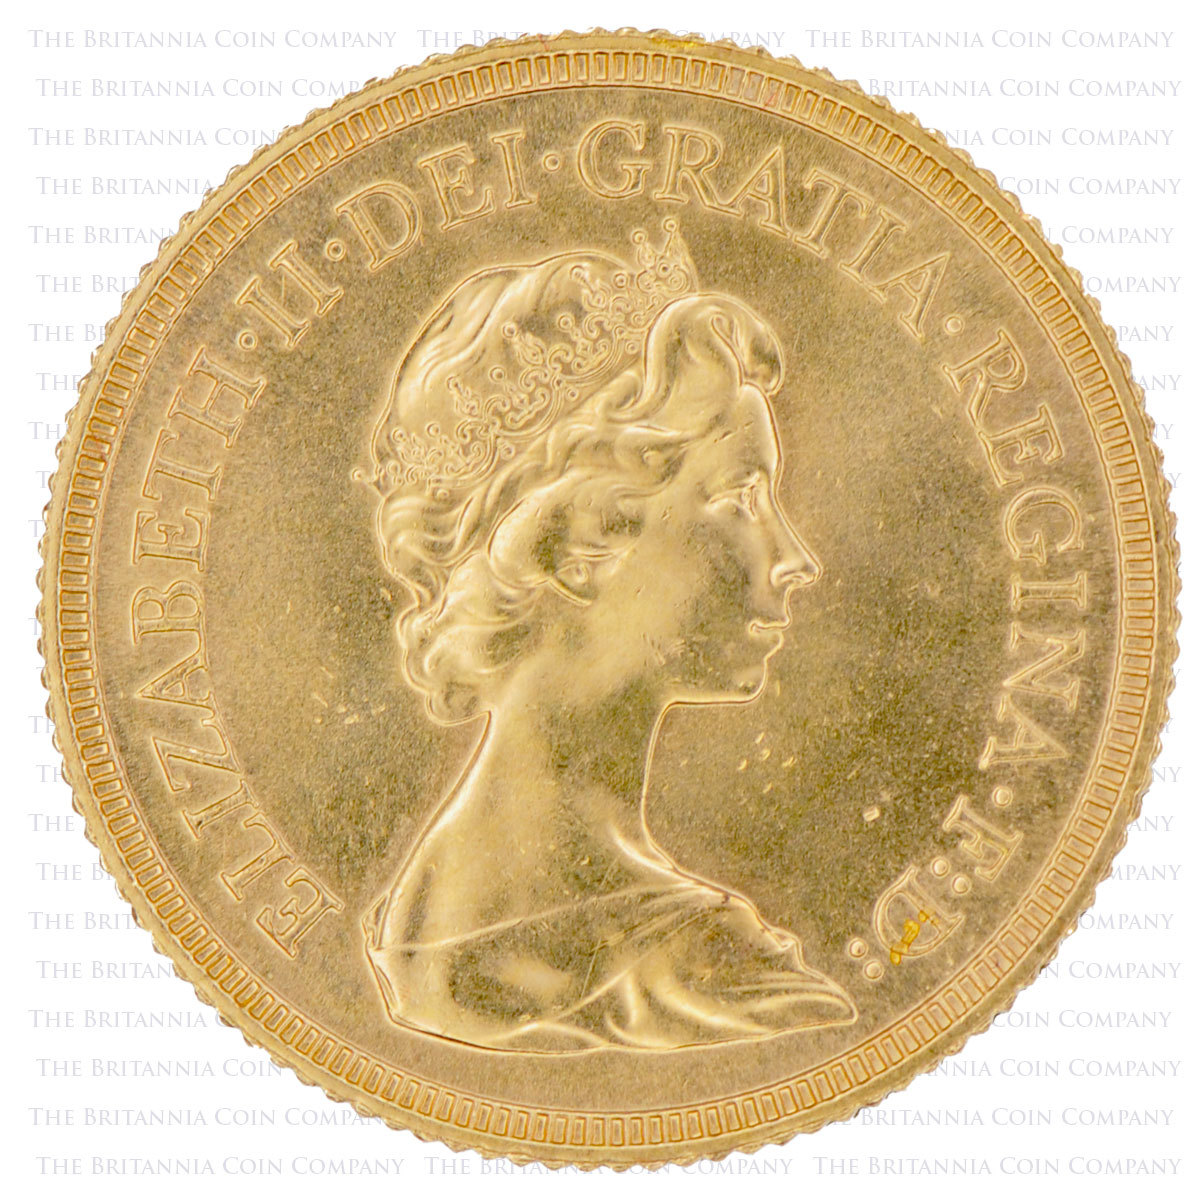 1982-gold-sovereign-obverse